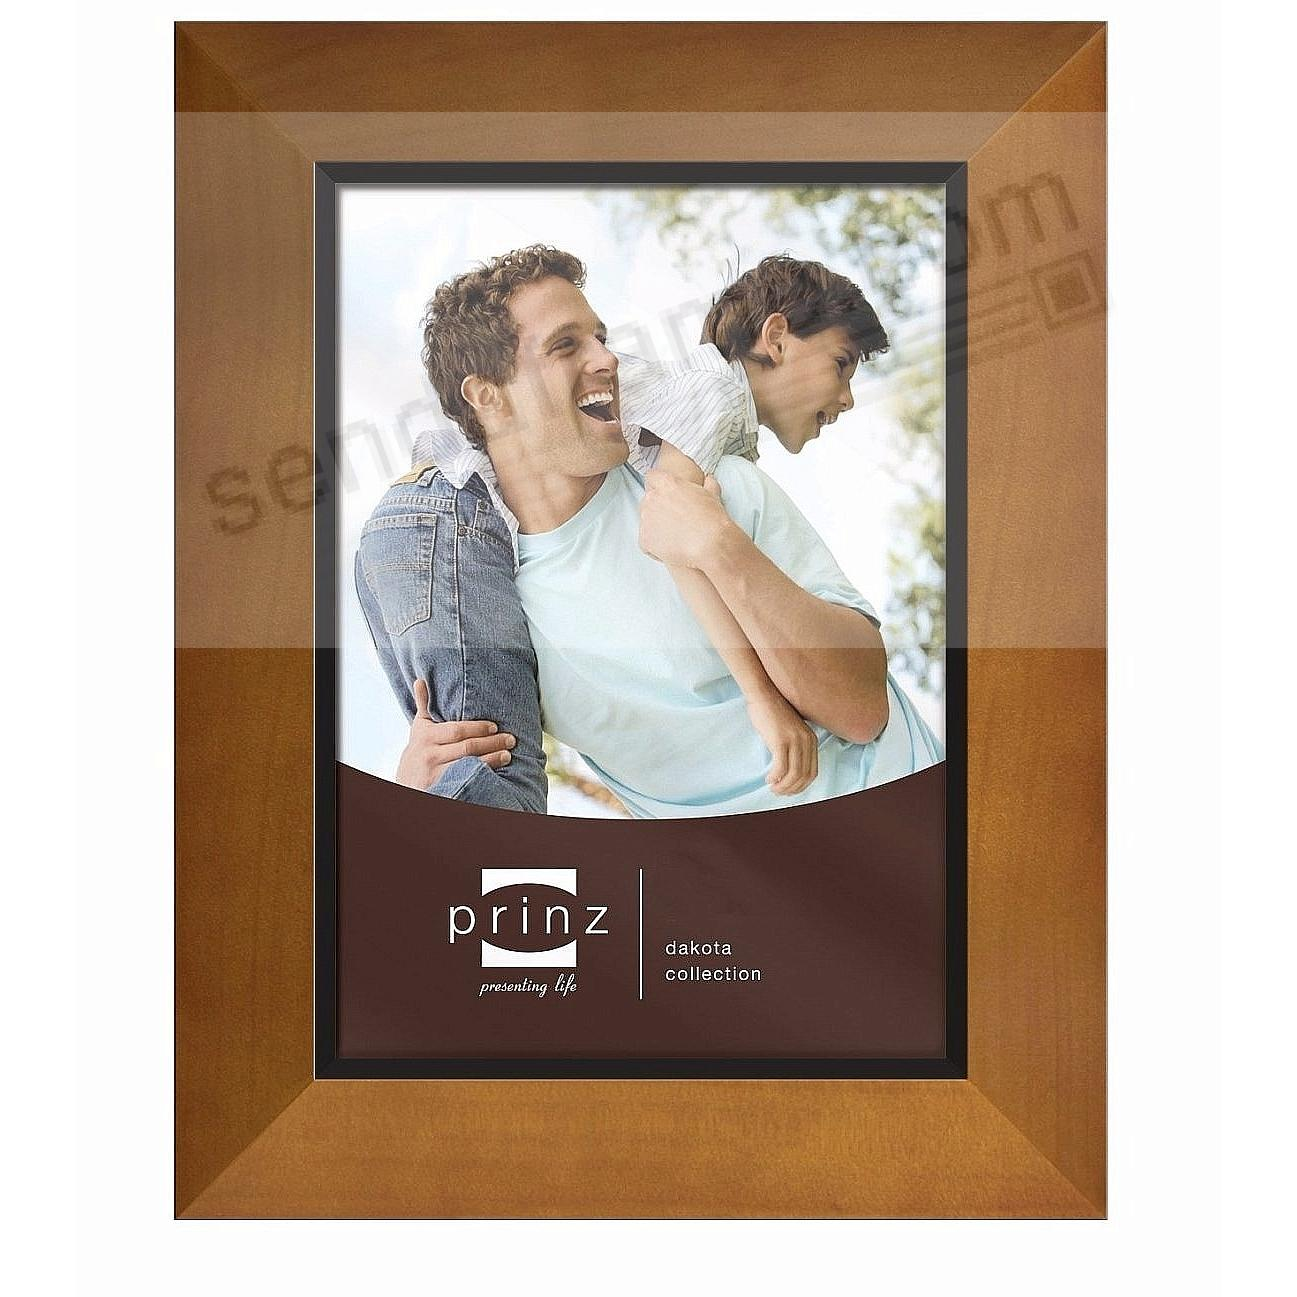 DAKOTA walnut 11x14 frame from Prinz®